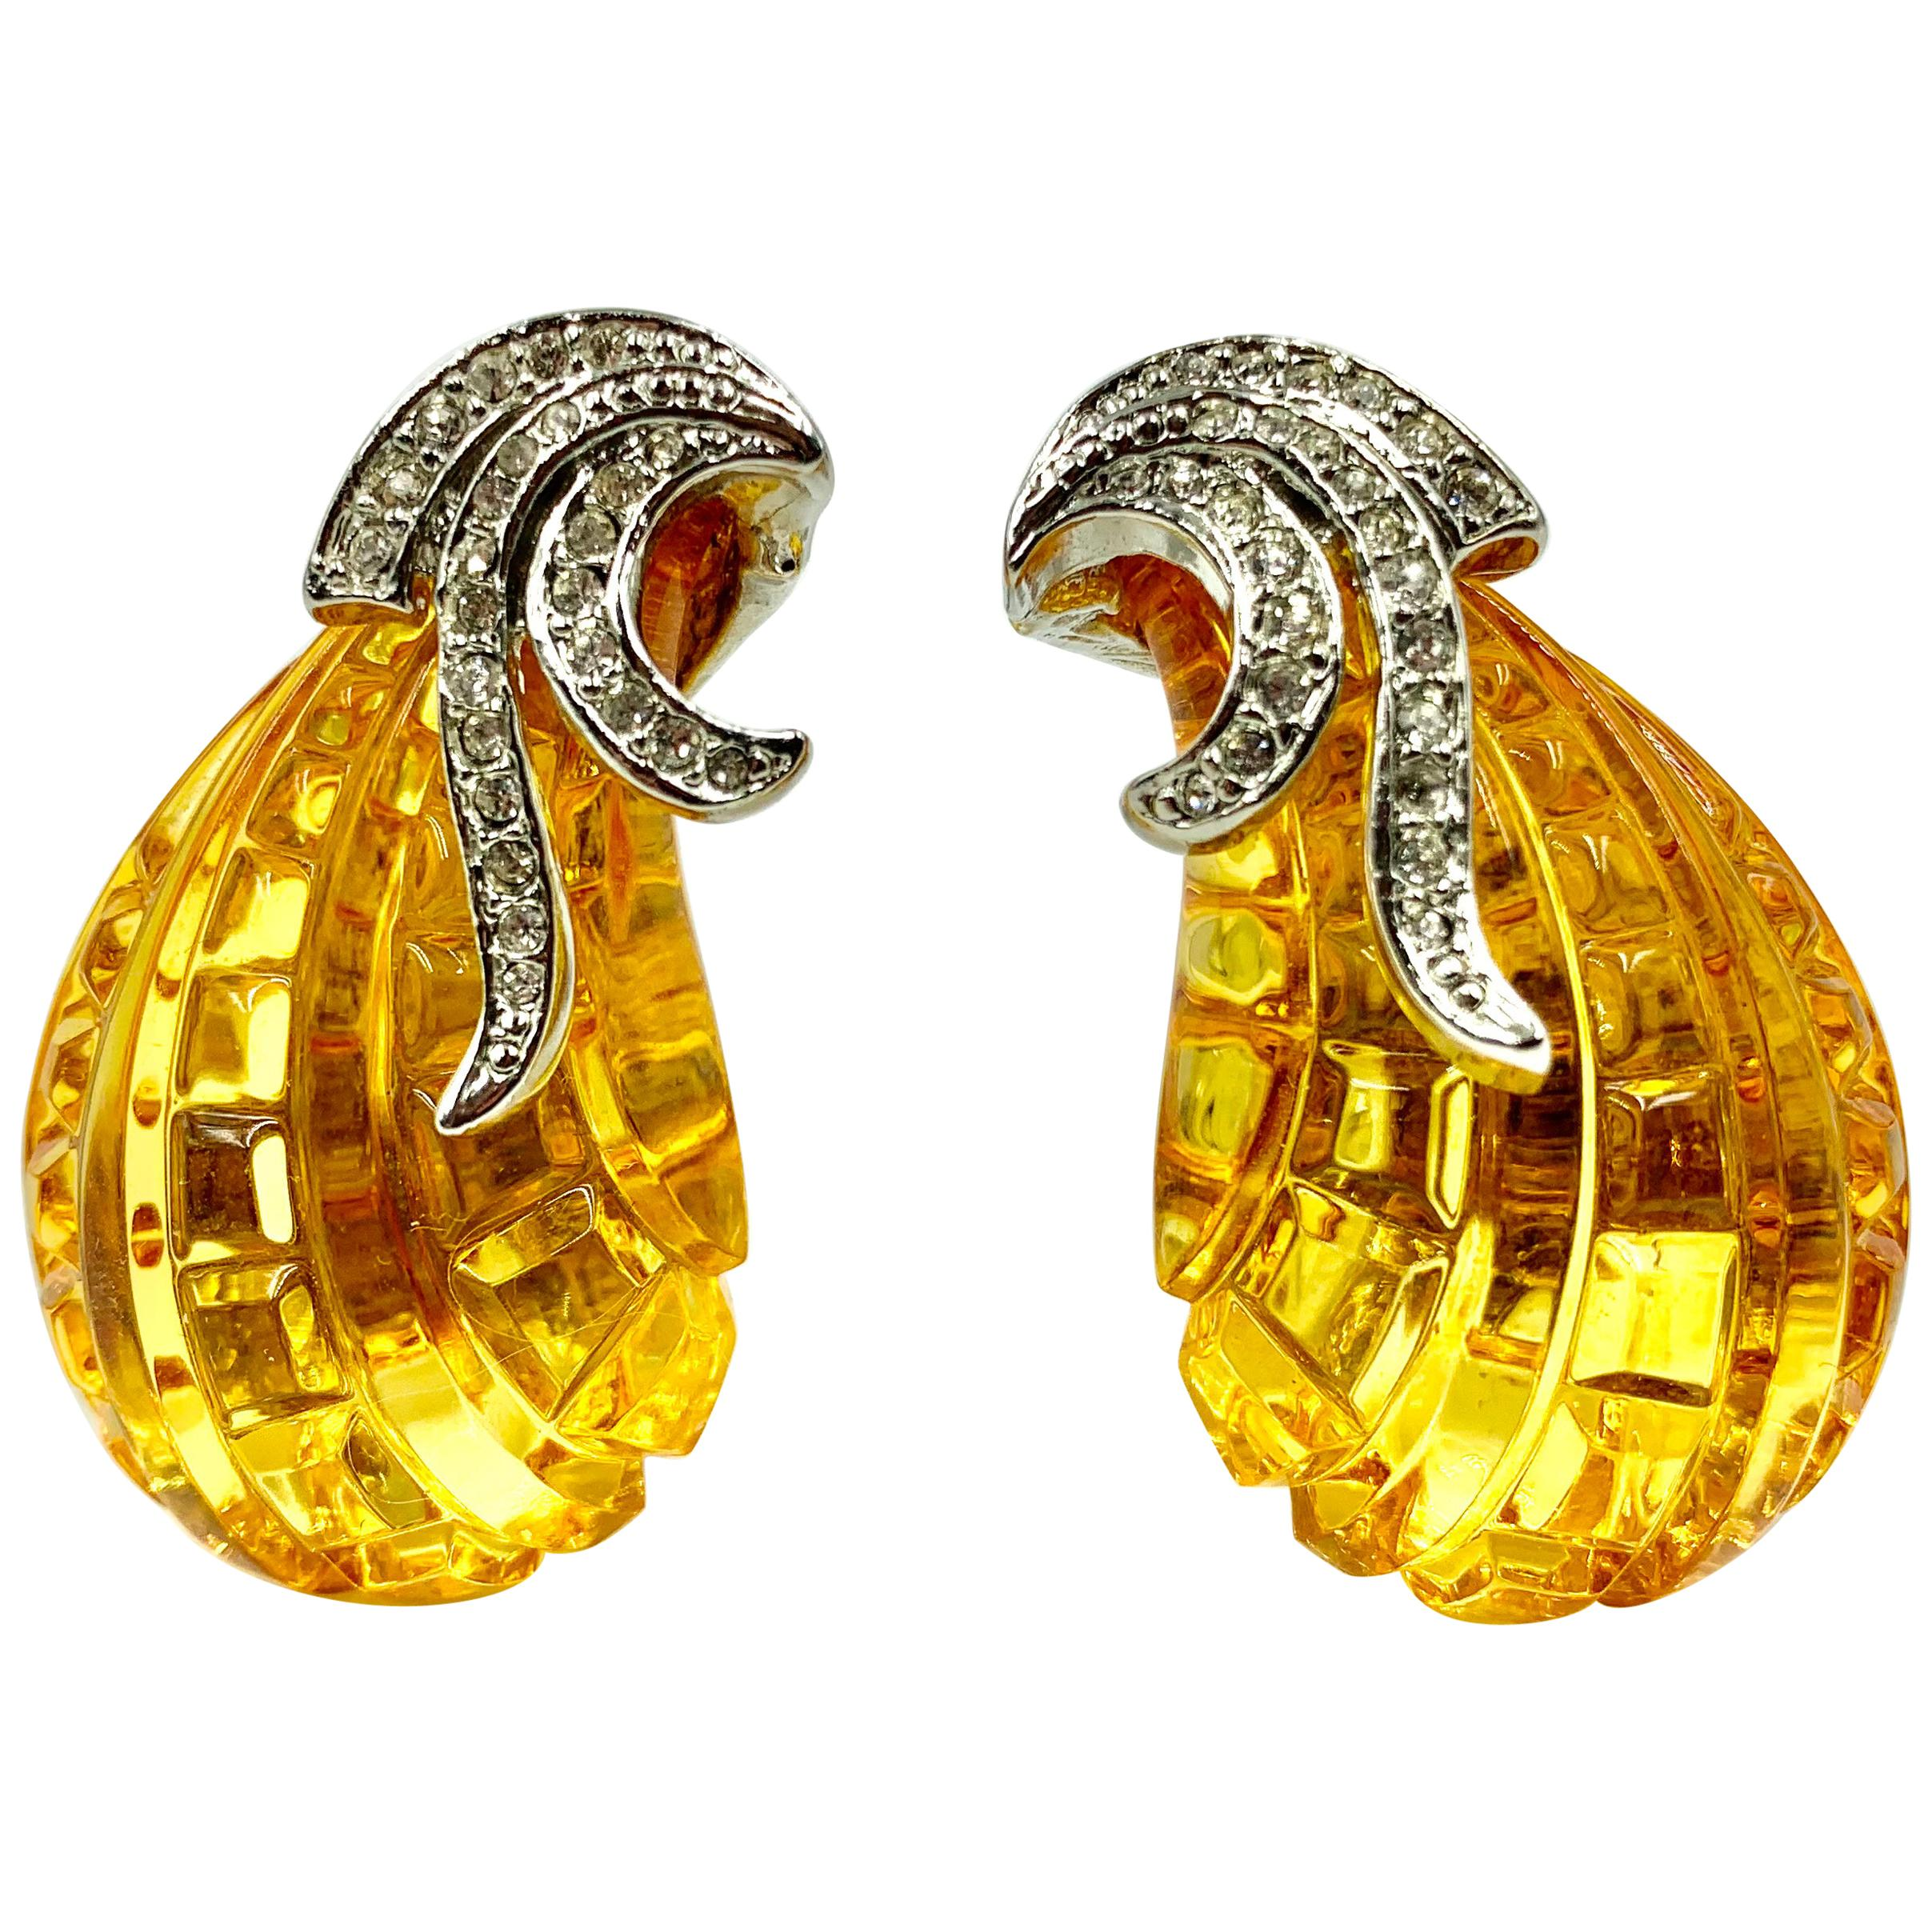 Large Statement Vintage Kenneth Jay Lane Faux Amber and Crystal Earrings